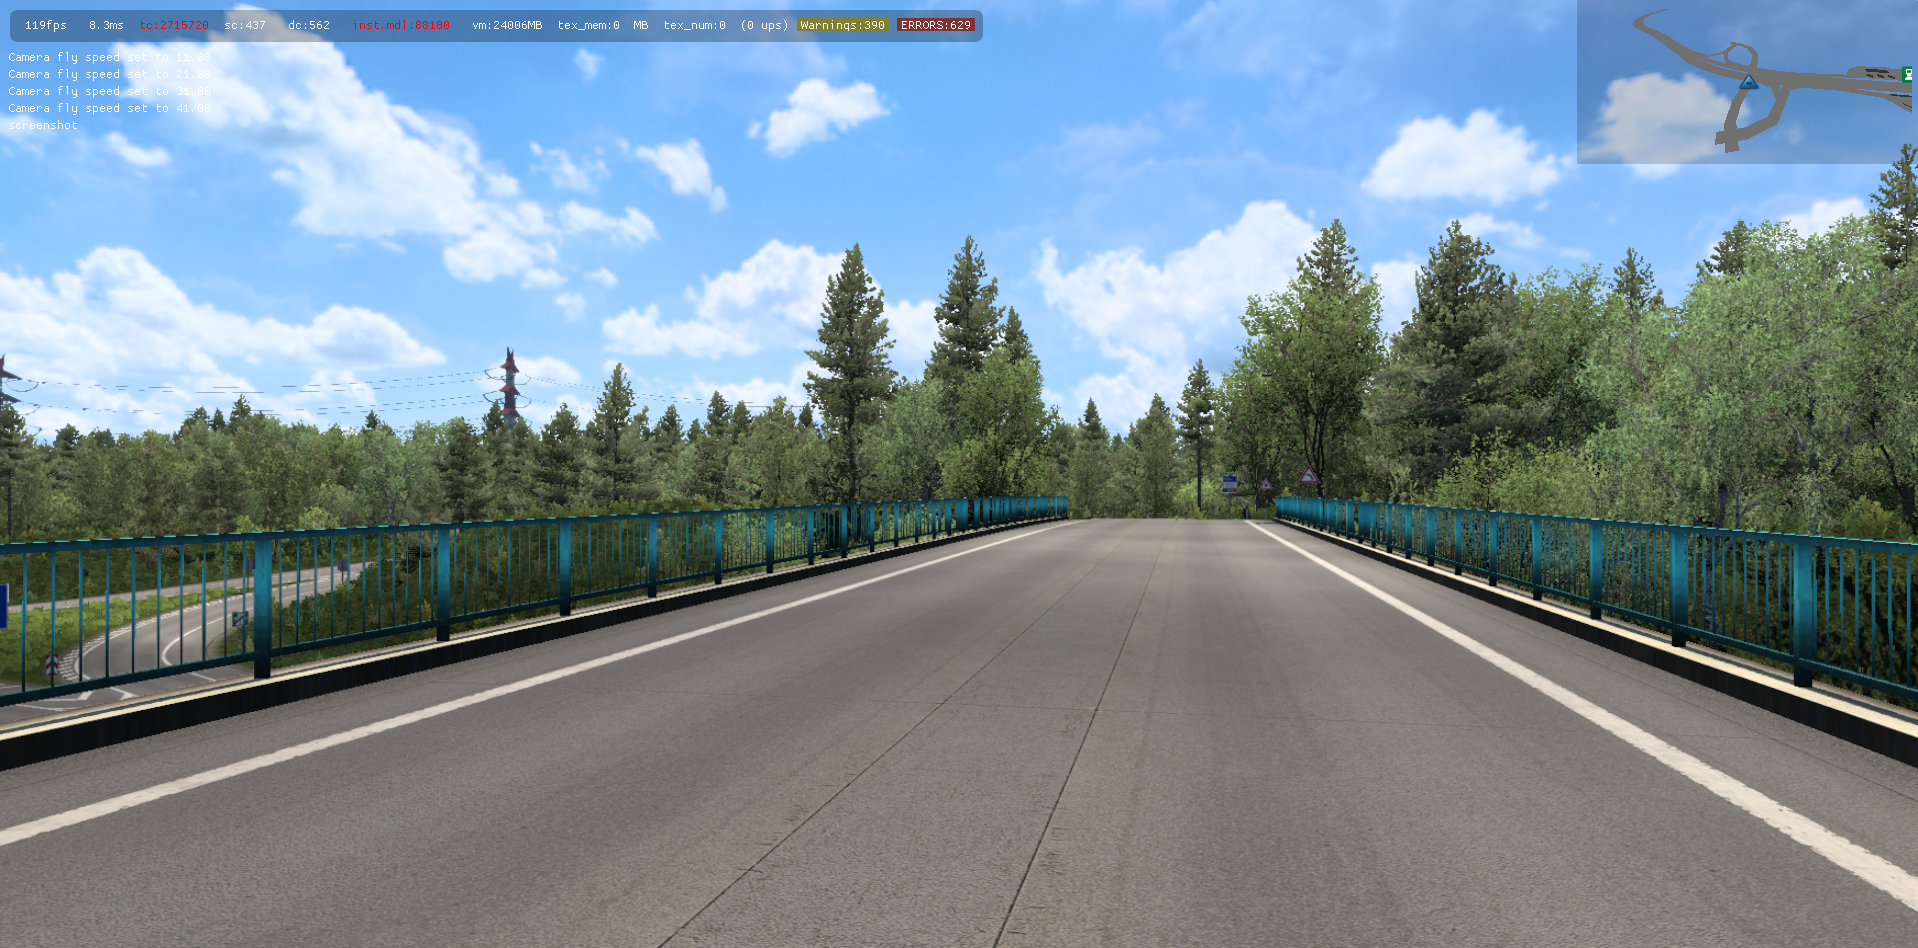 ets2_20210729_235818_00.png